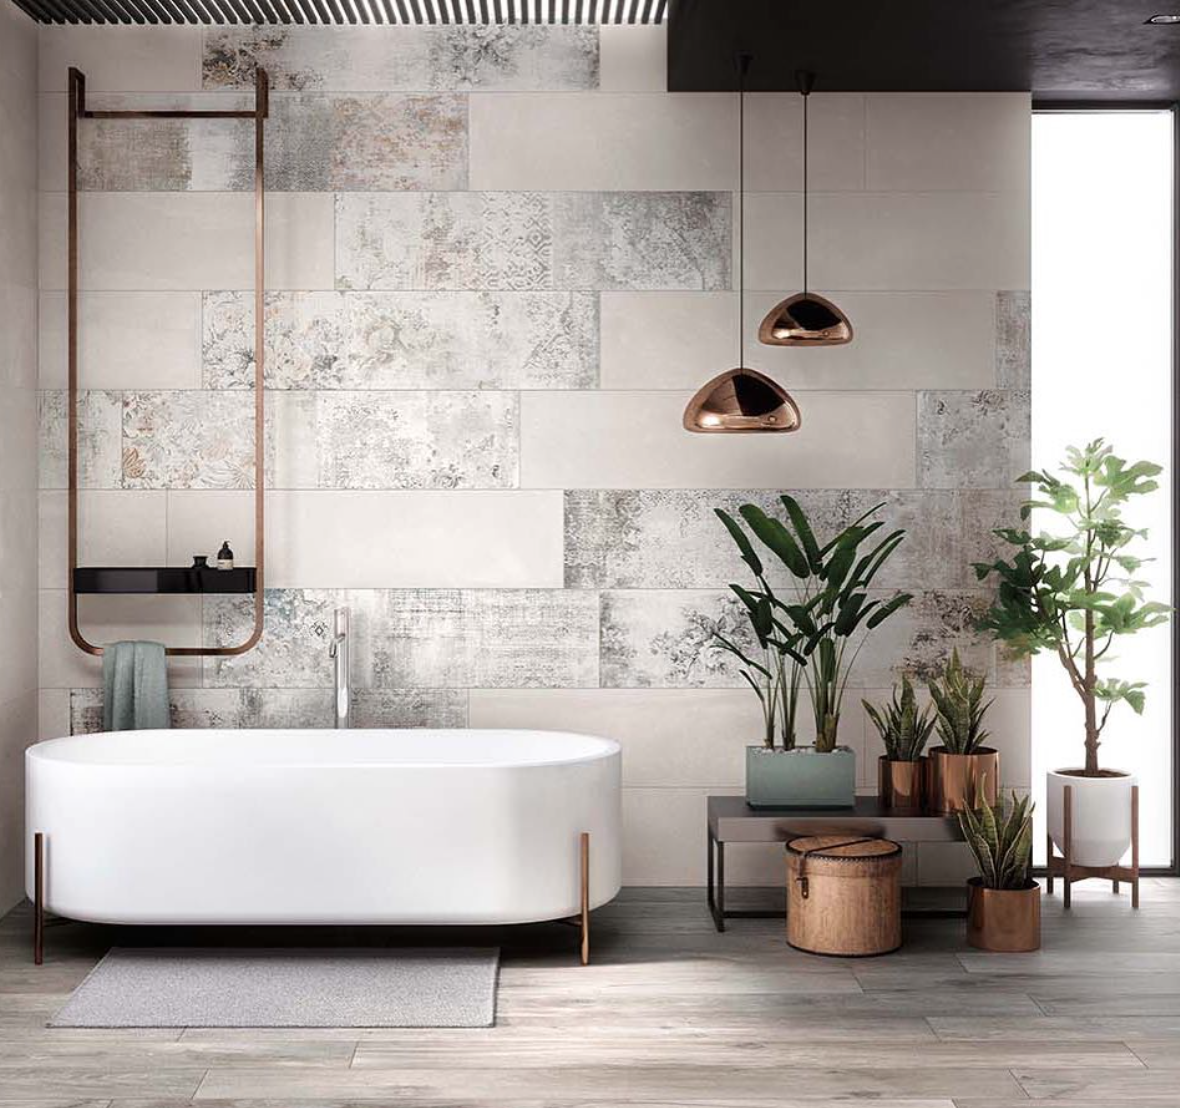 The 15 Most Beautiful Bathrooms On Pinterest Bathroom Interior